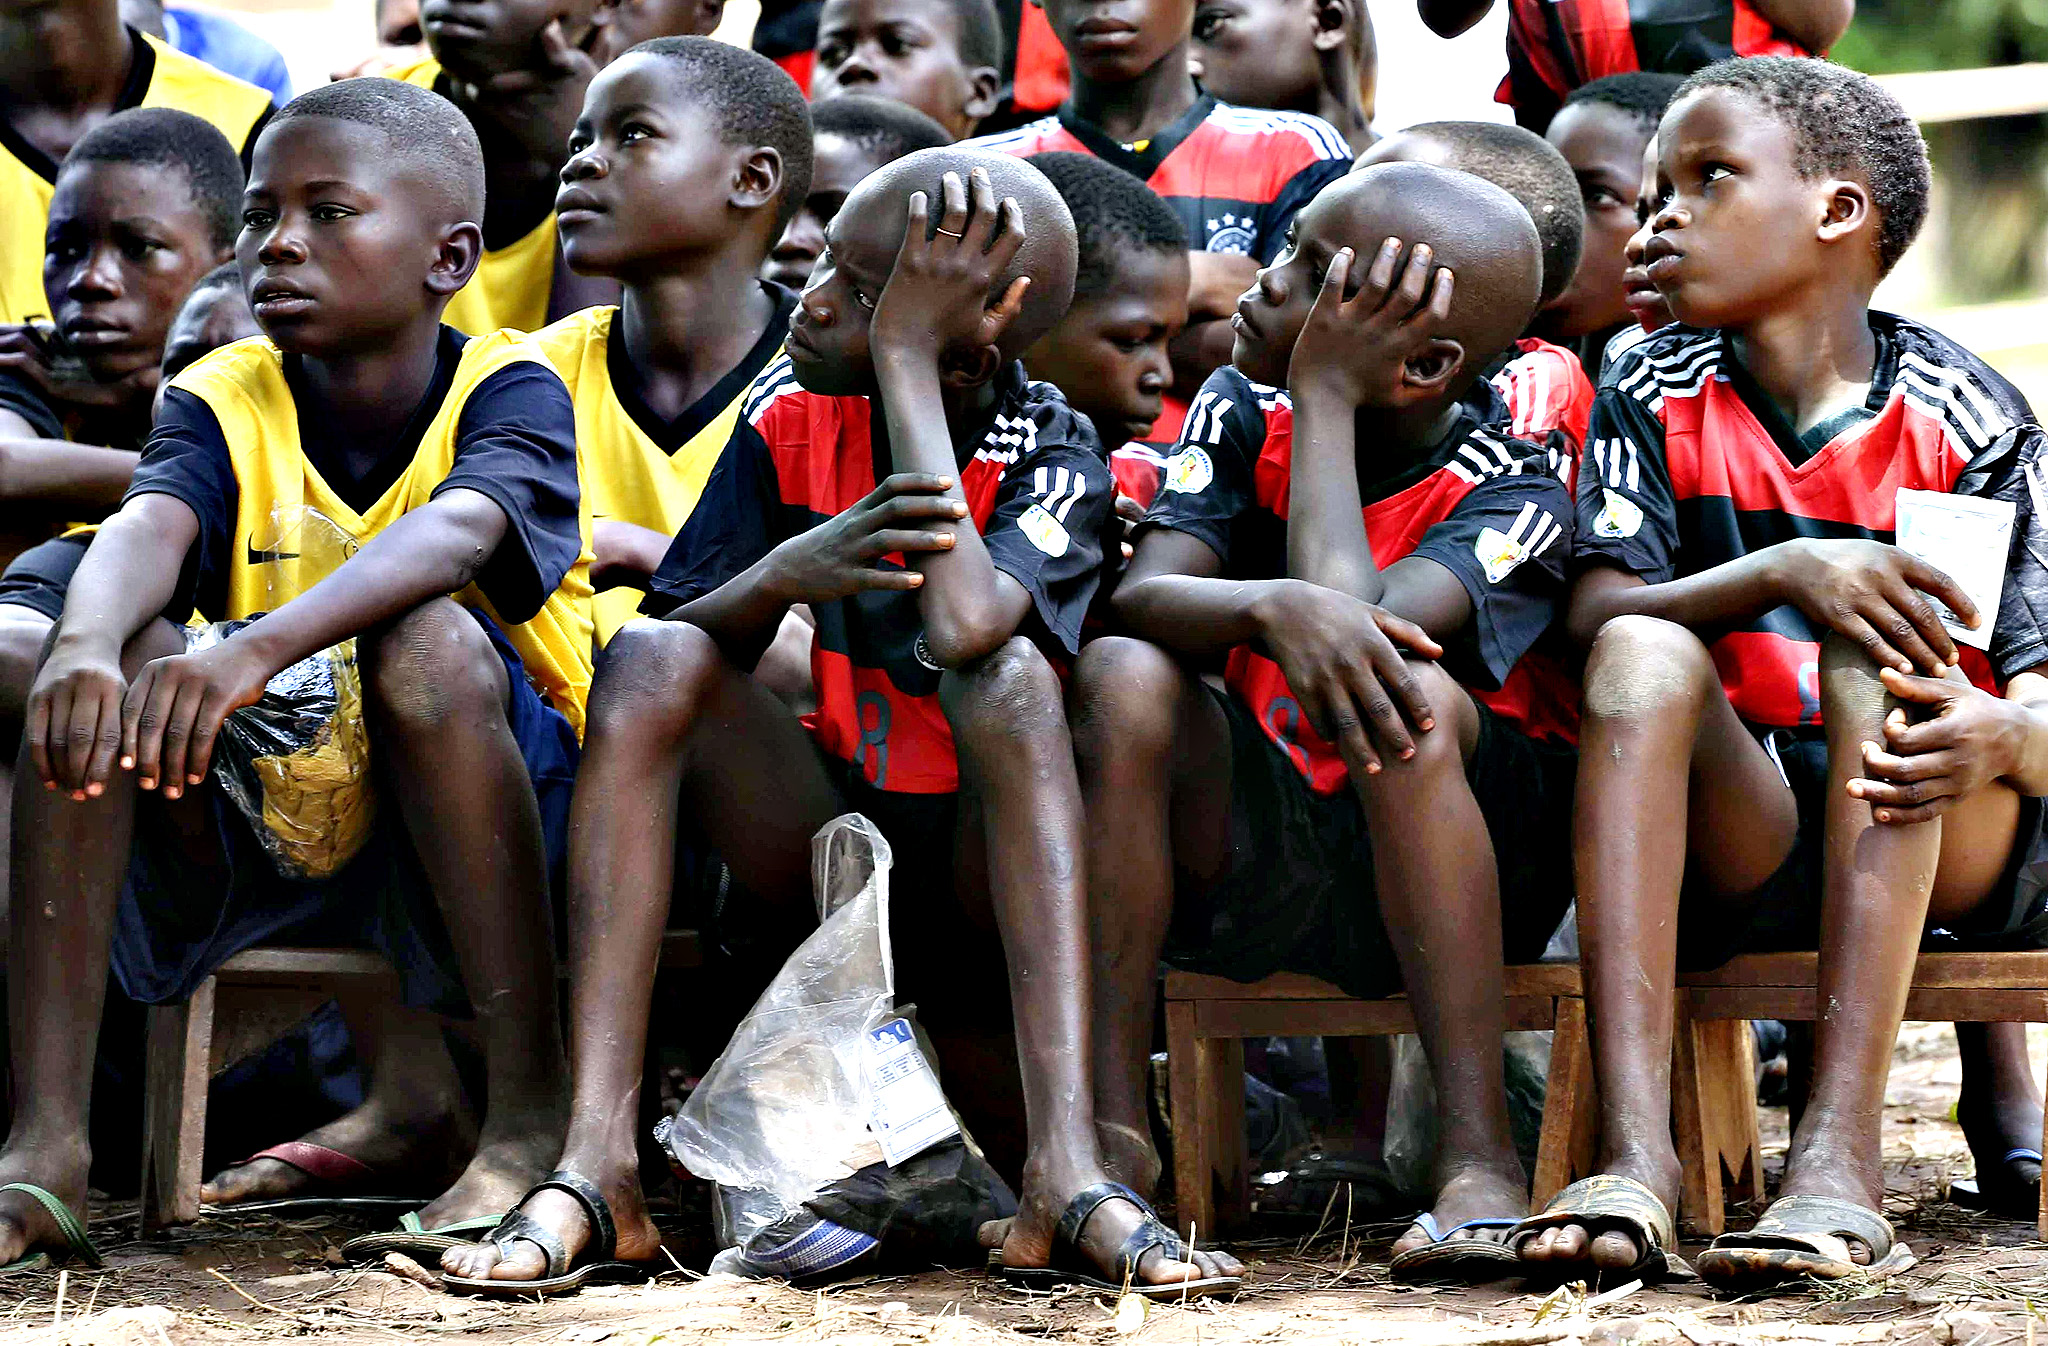 Former anti-Balaka child soldiers wait to be released in Bambari, Central African Republic